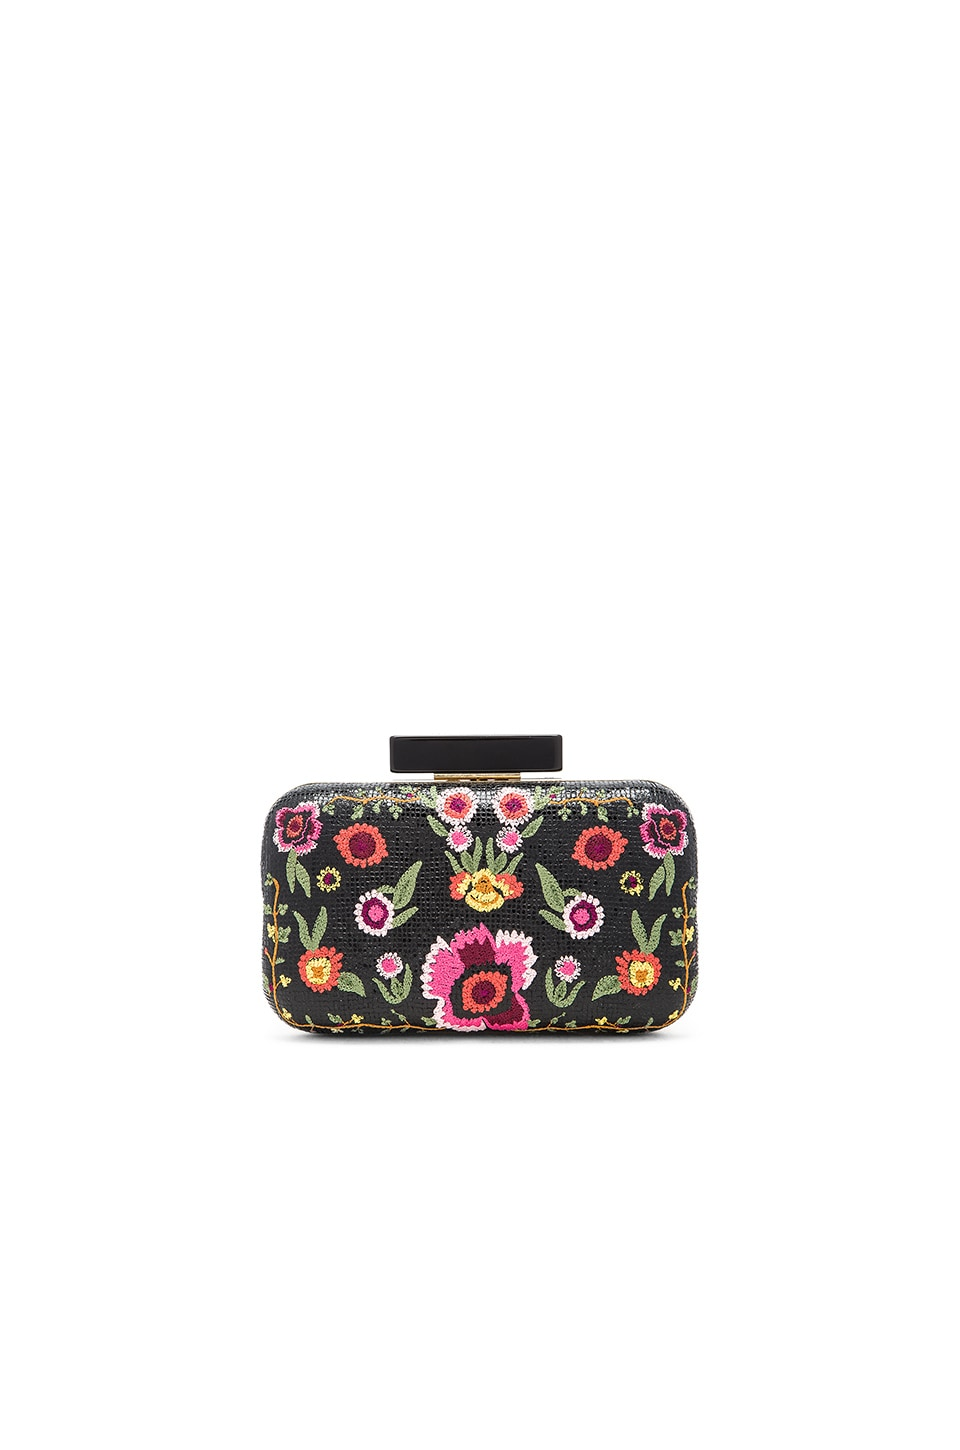 Alice + Olivia Bohemian Large Clutch in Multi